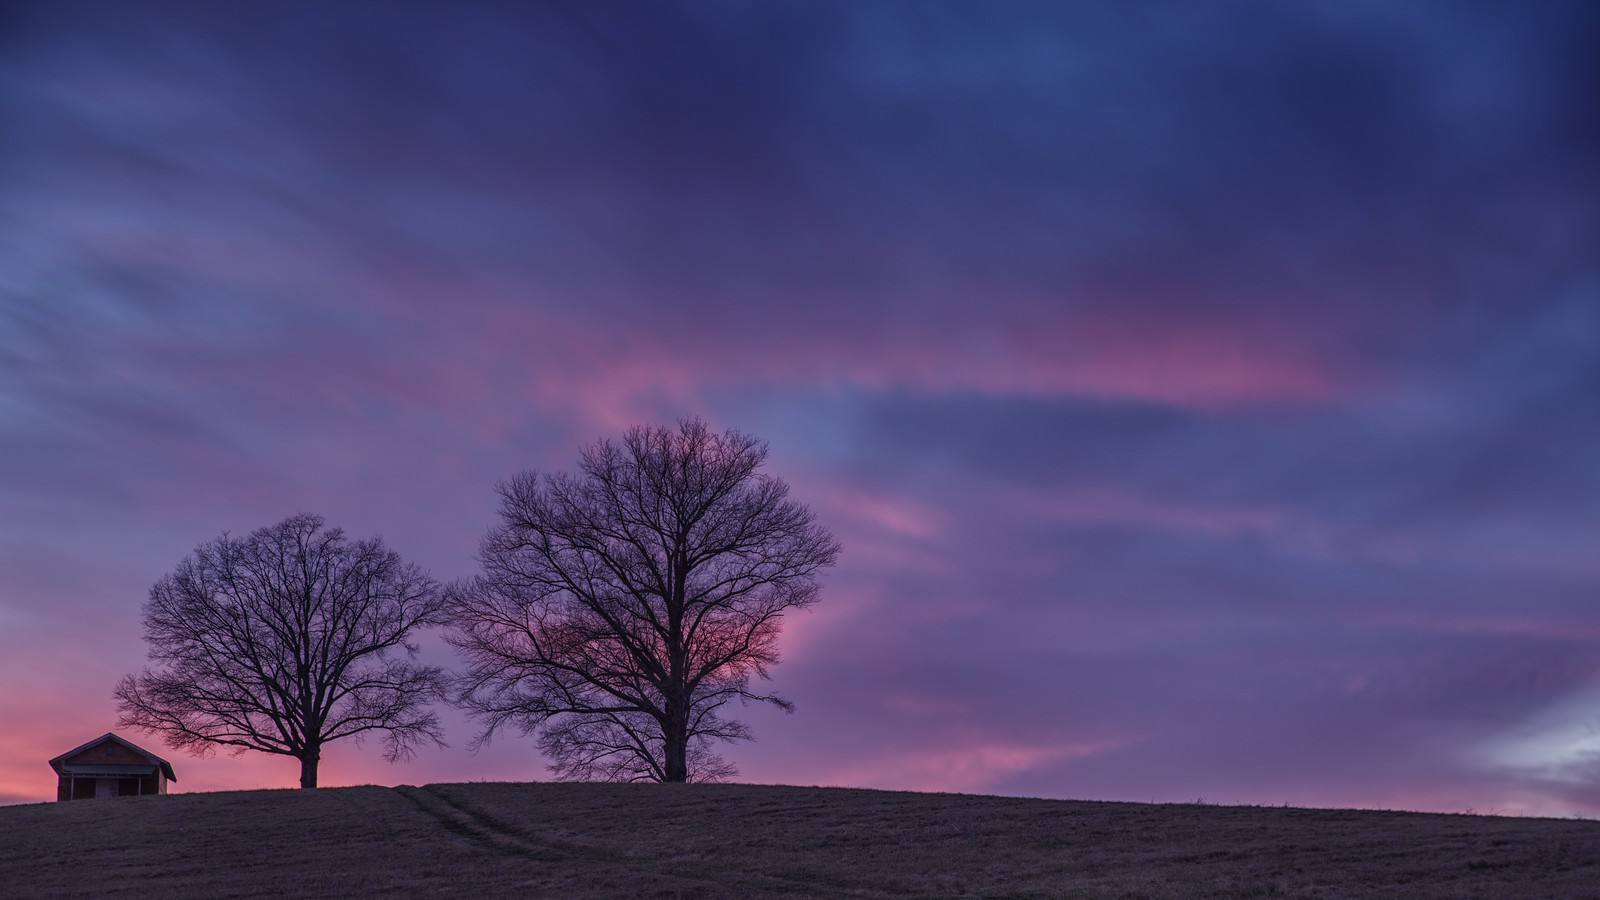 Two Trees at Sunset, RICOH PENTAX K-1, HD PENTAX-D FA 24-70mm F2.8ED SDM WR